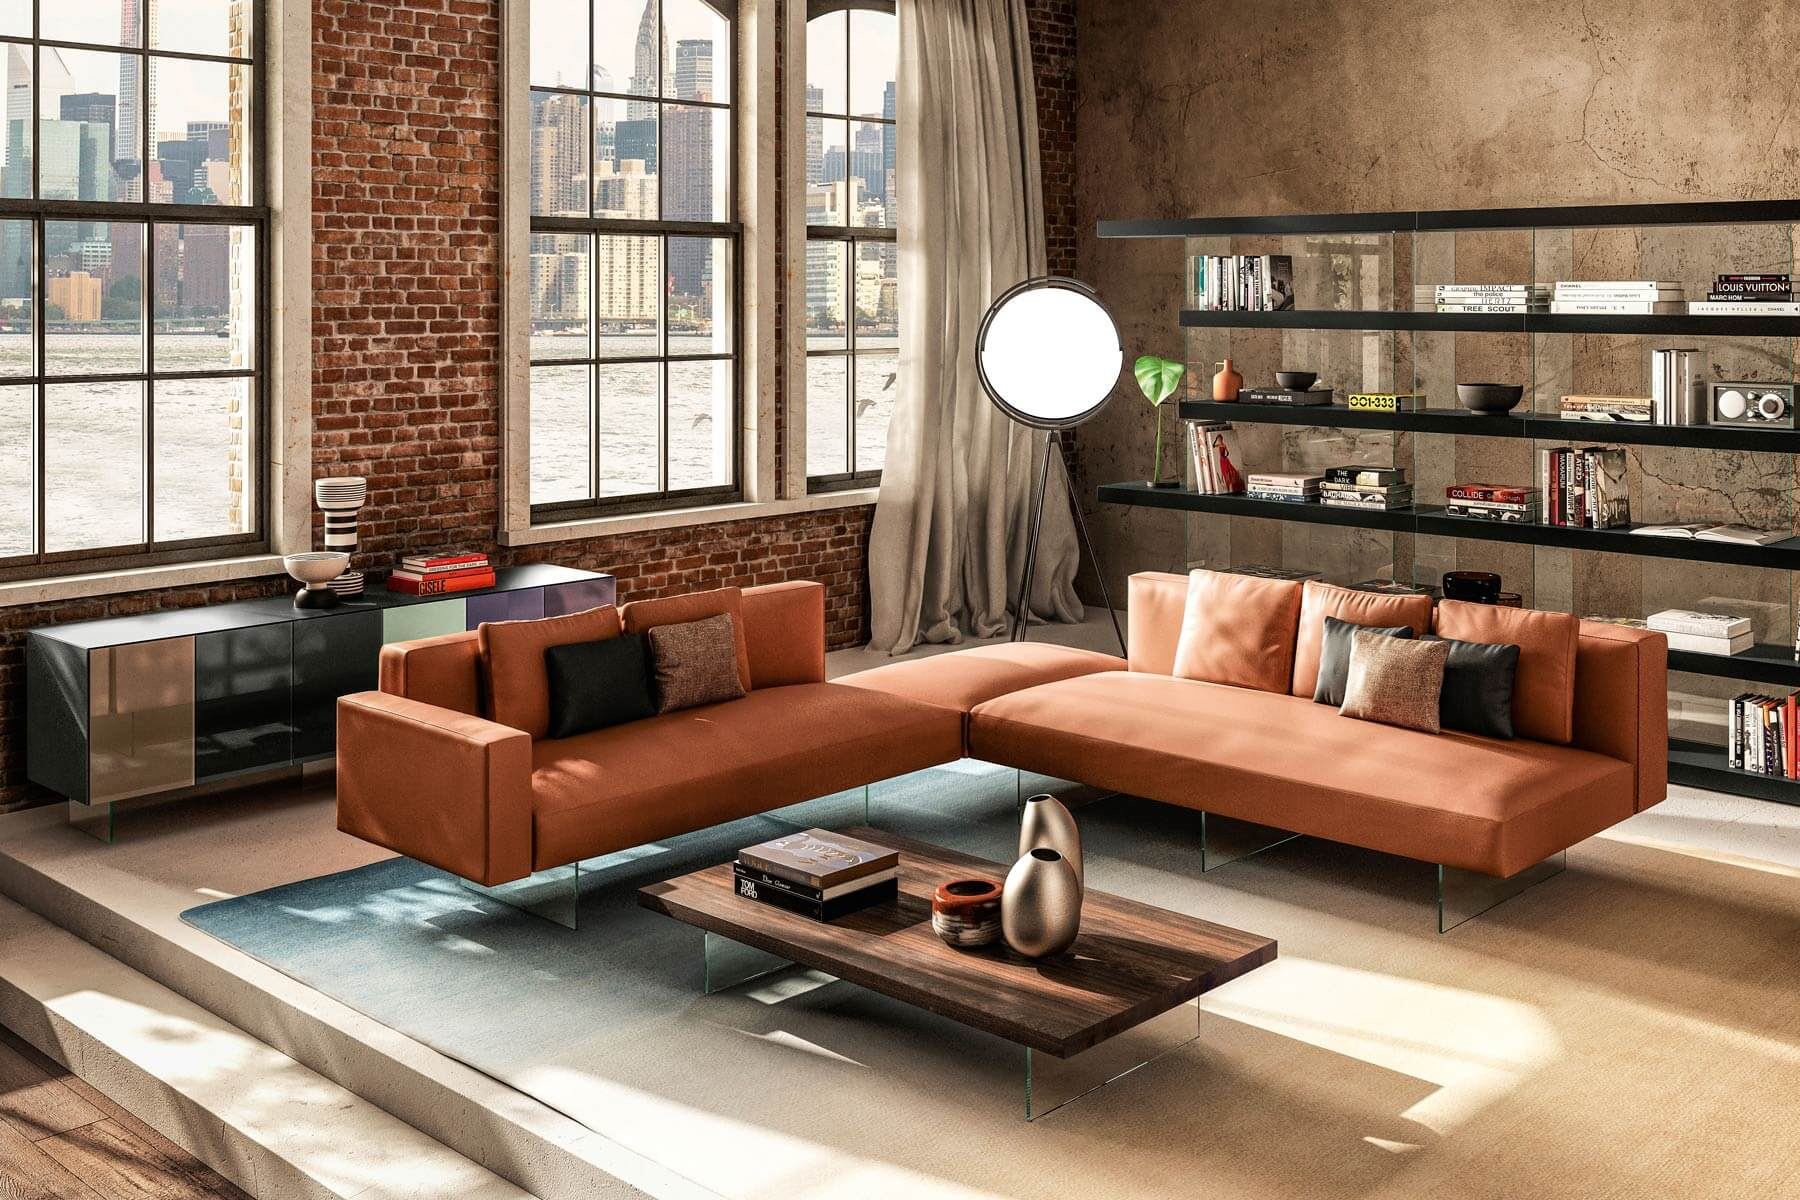 Sofà divano letto clic clac 2 posti in similpelle reclinabile design moderno elly. Air Sofa A Modular Sofa For Your Well Being Lago Design